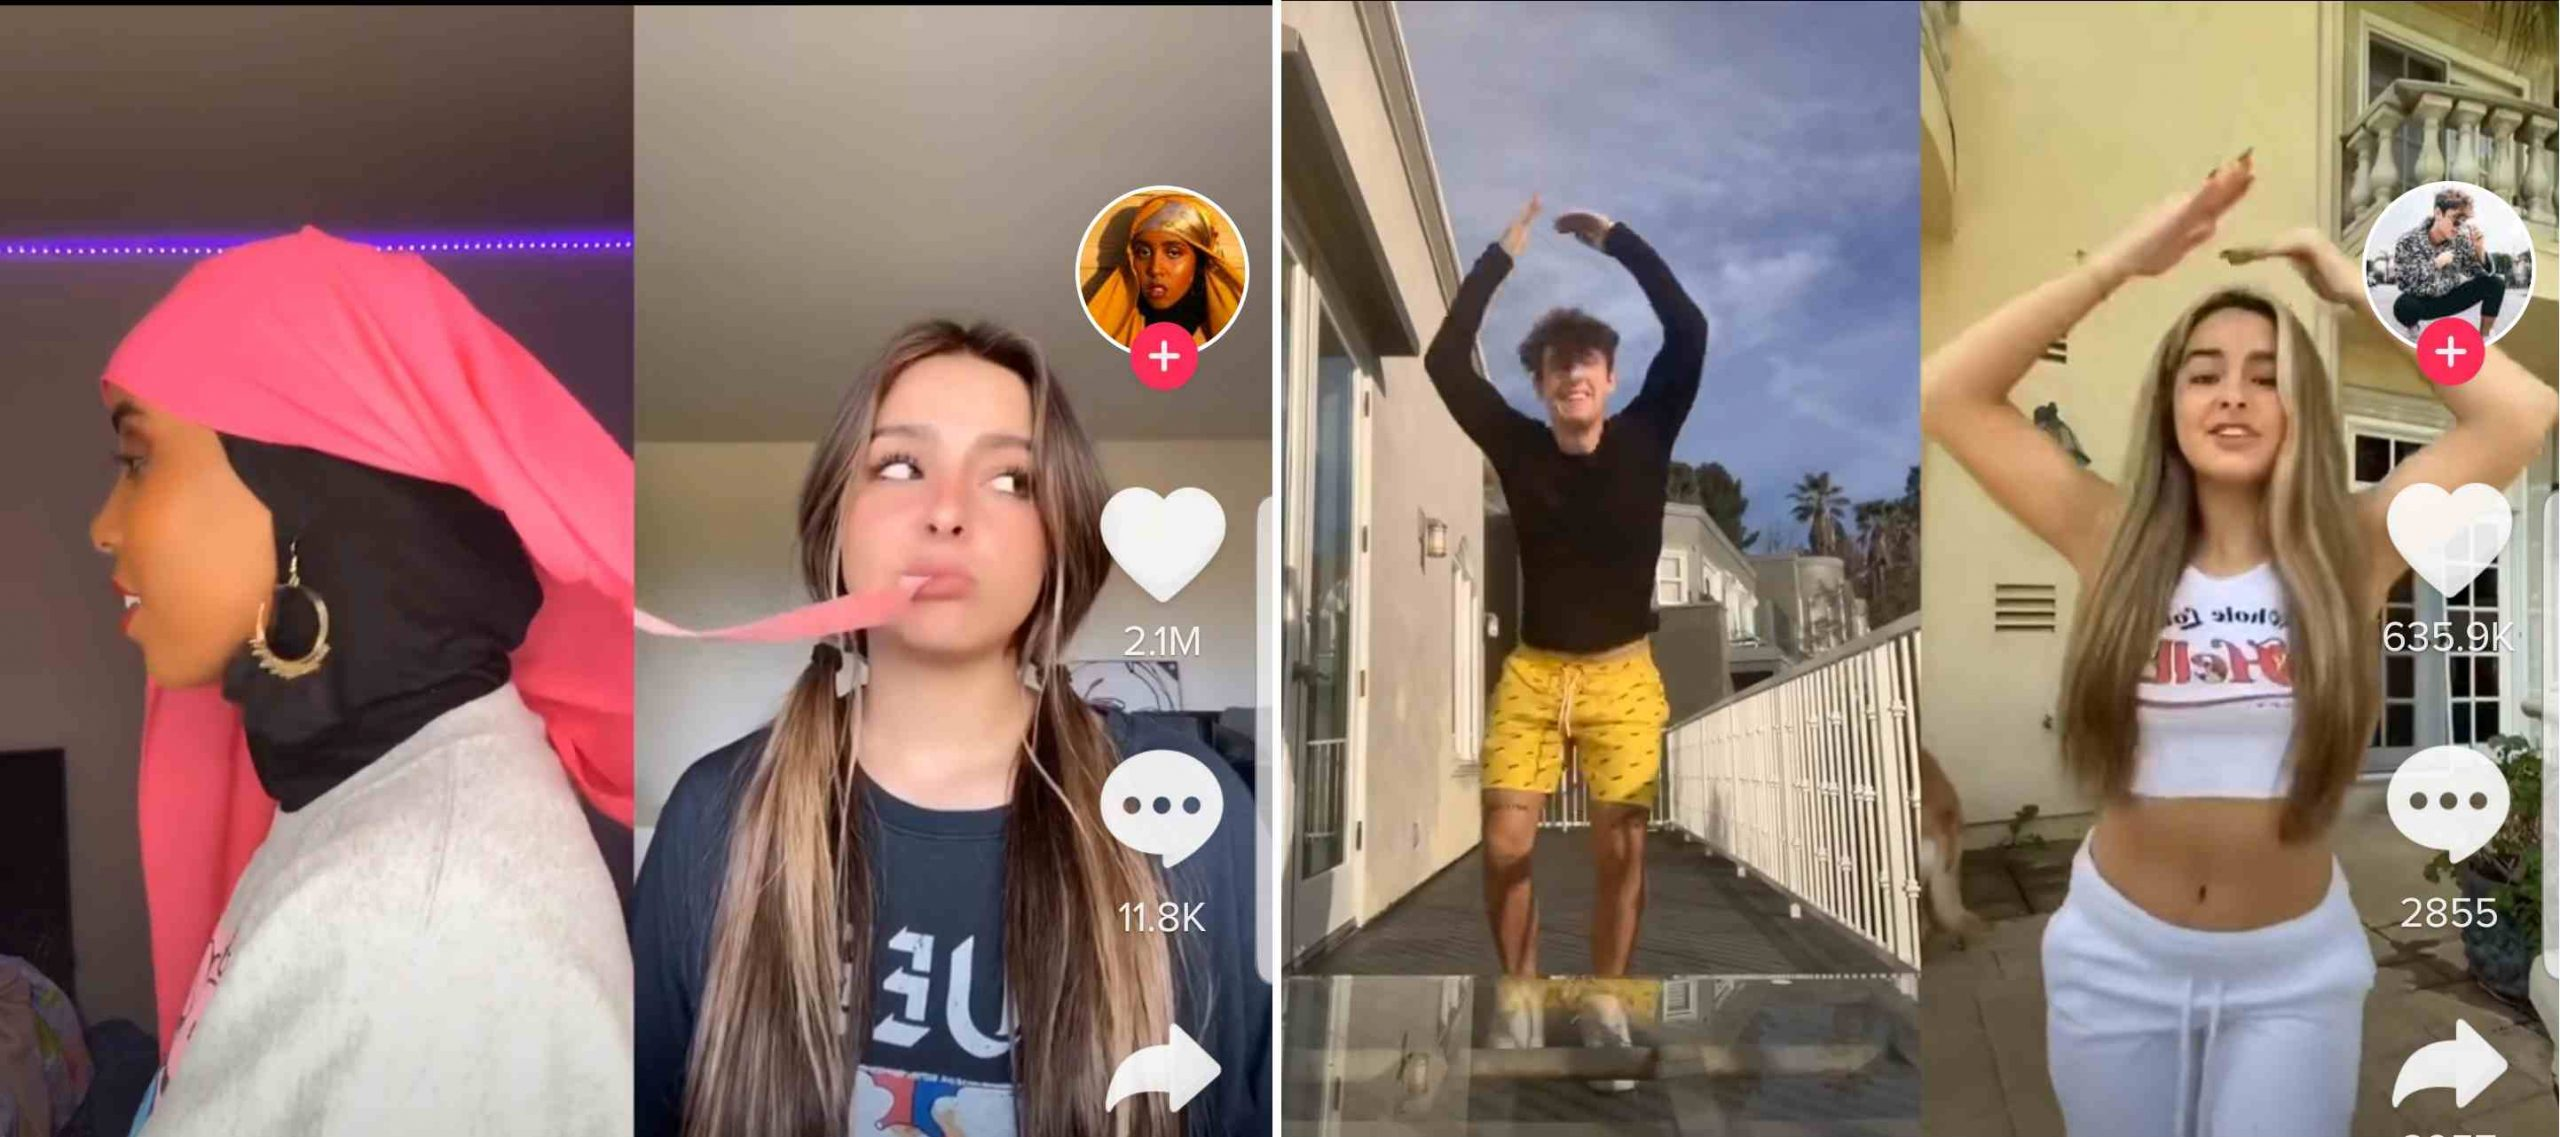 How to duet on Tiktok?